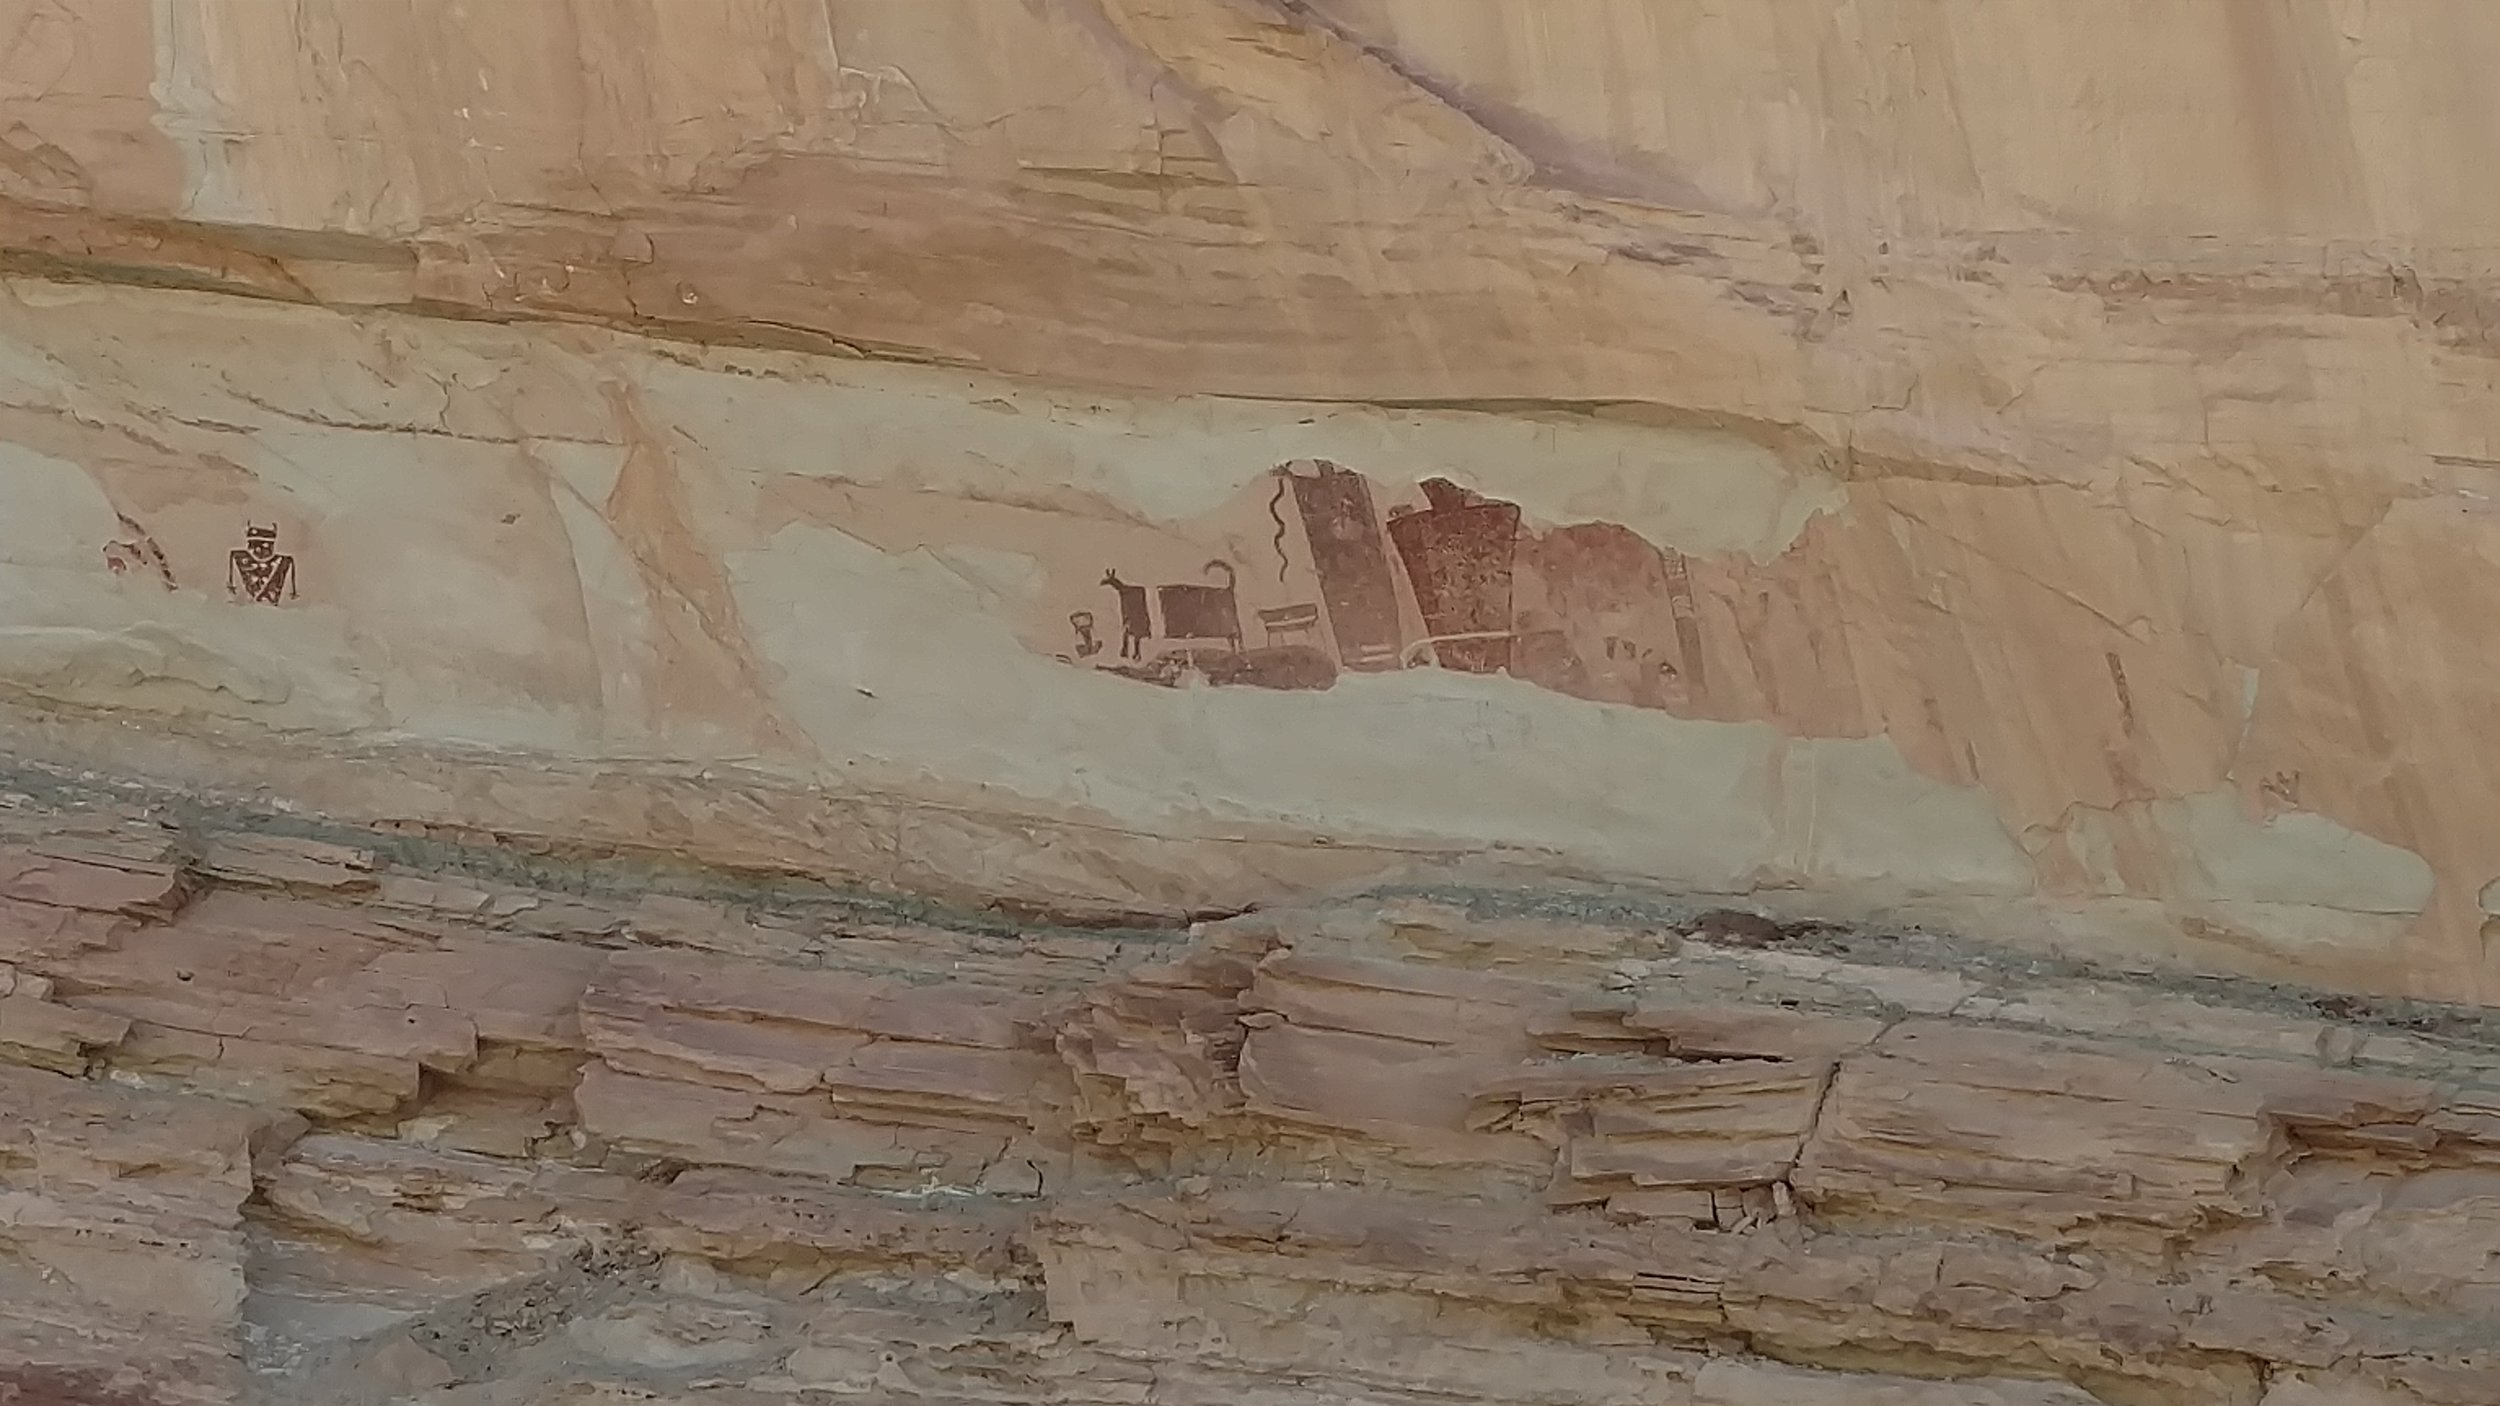 Temple Mountain Pictograph Panel